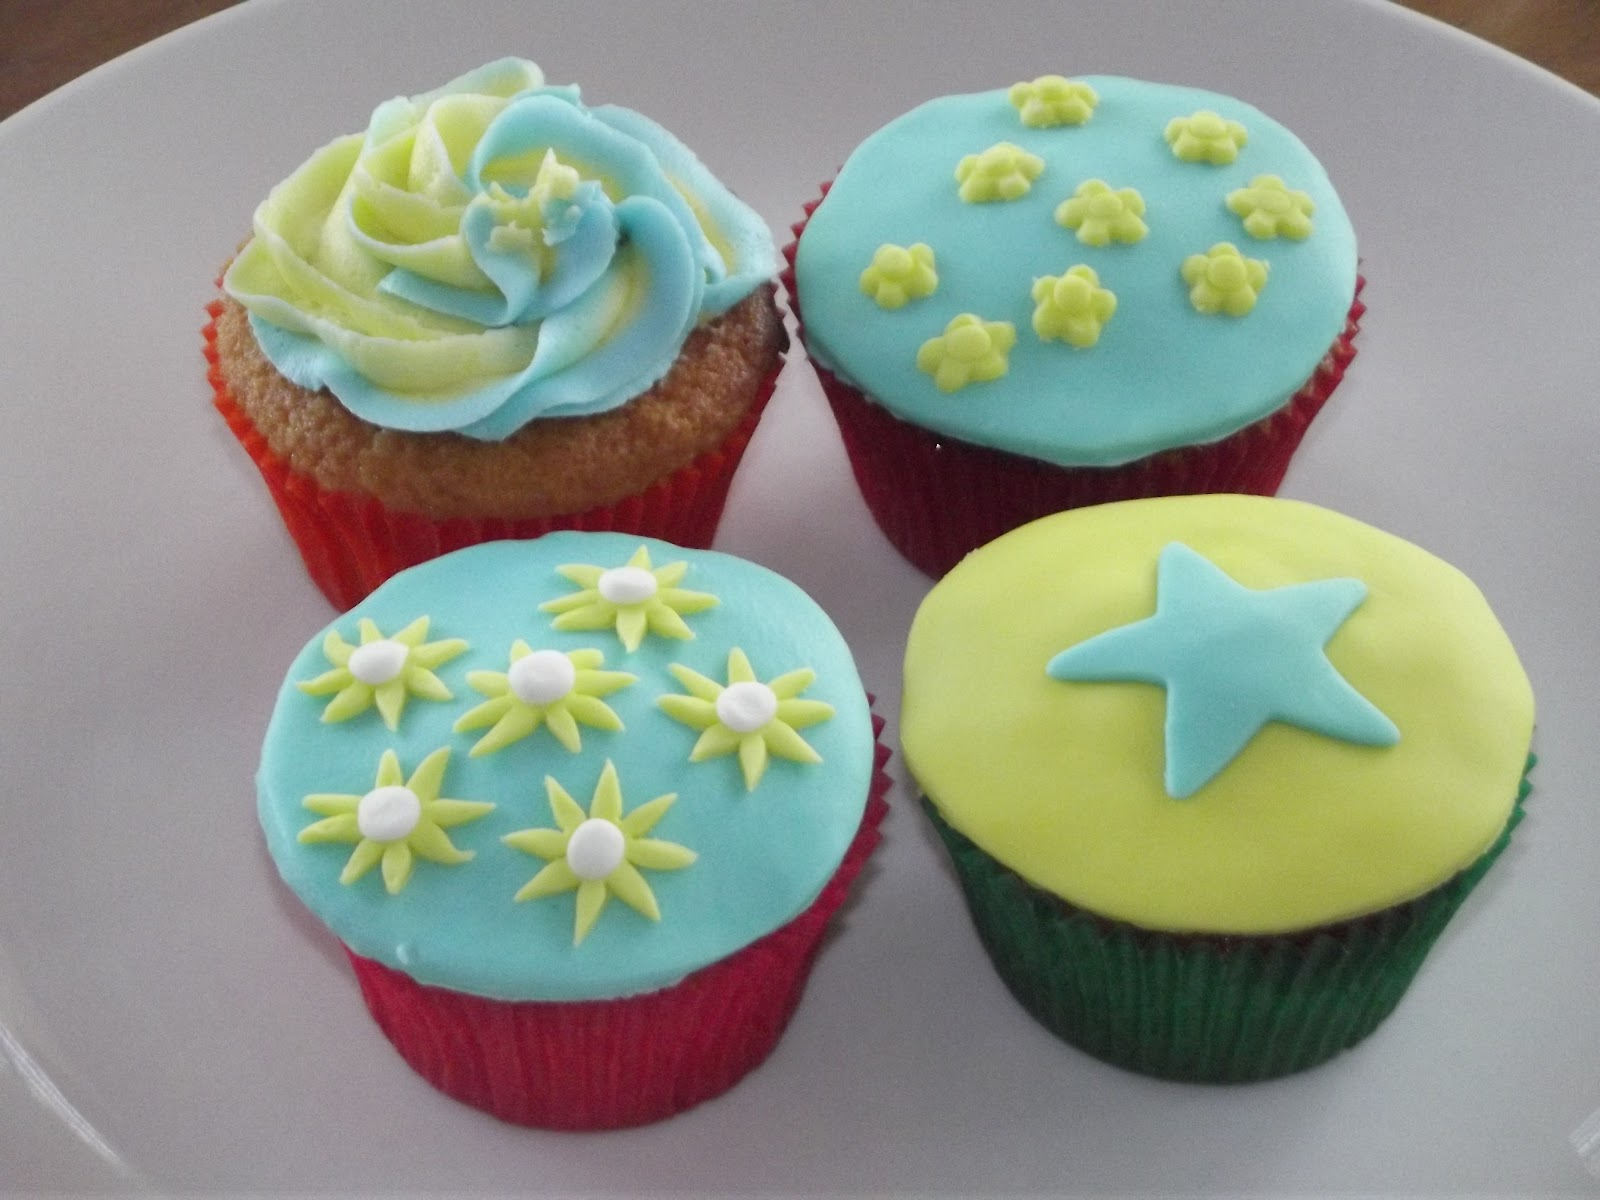 Cake Decorating Course Albury Wodonga : Sweetness: Cake Decorating Course Part 2